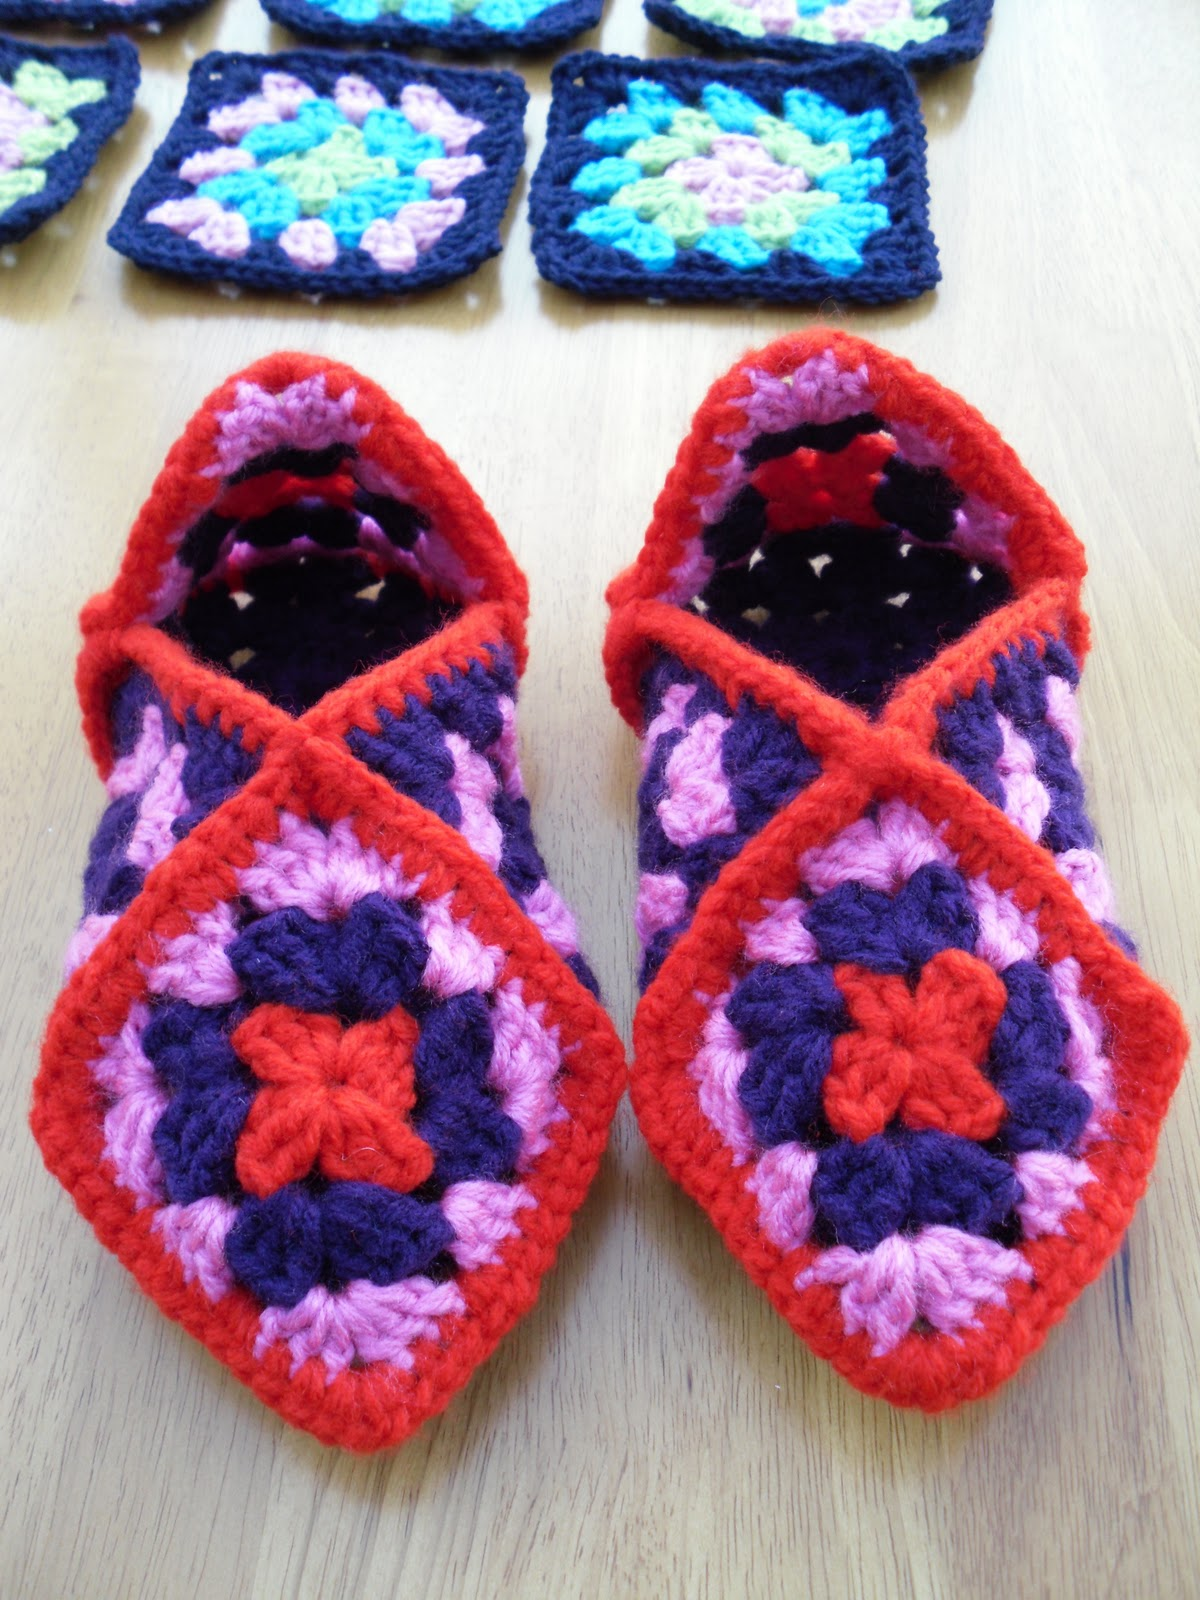 Crochet Pattern For Granny Square Slippers : The Craft Attic: Crochet Granny Square Slippers